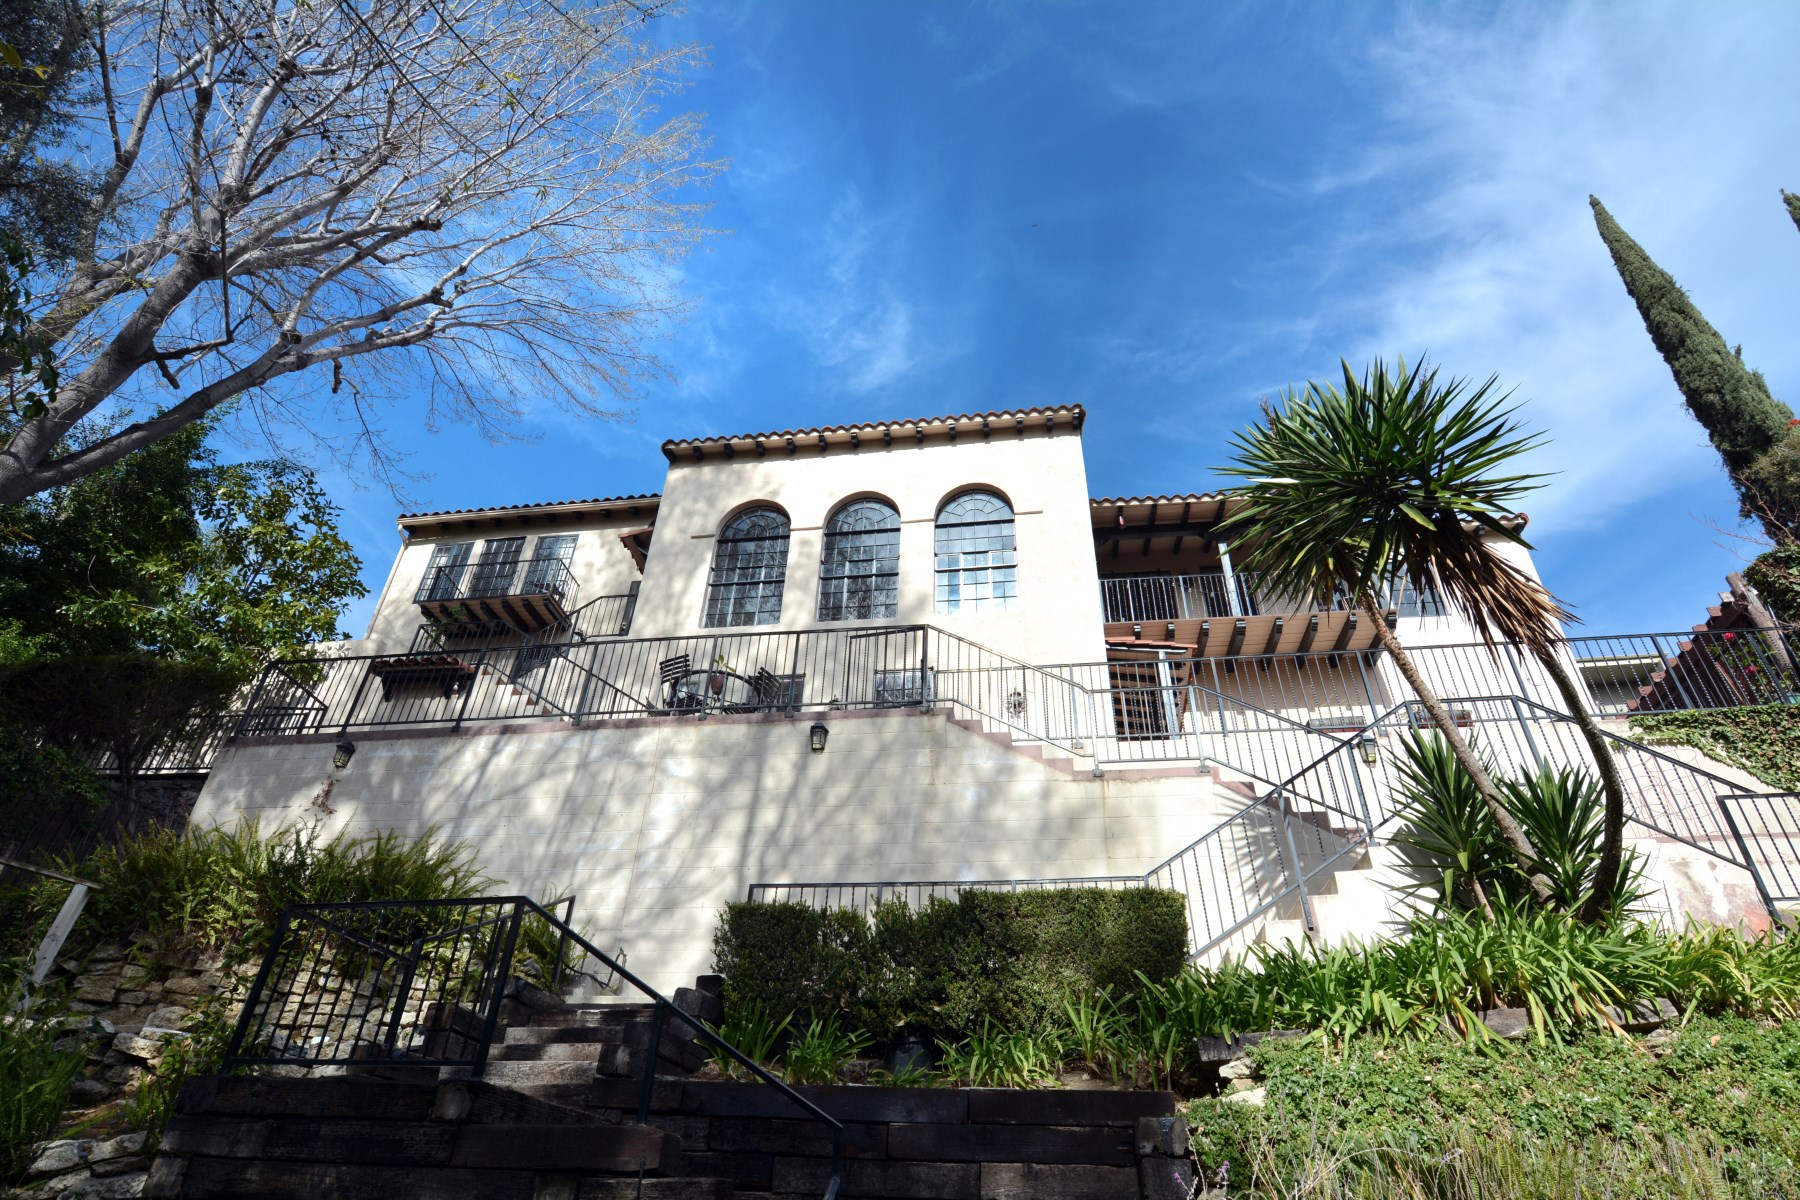 Single Family Home for Sale at 3656 Lowry Road Los Feliz, Los Angeles, California 90027 United States